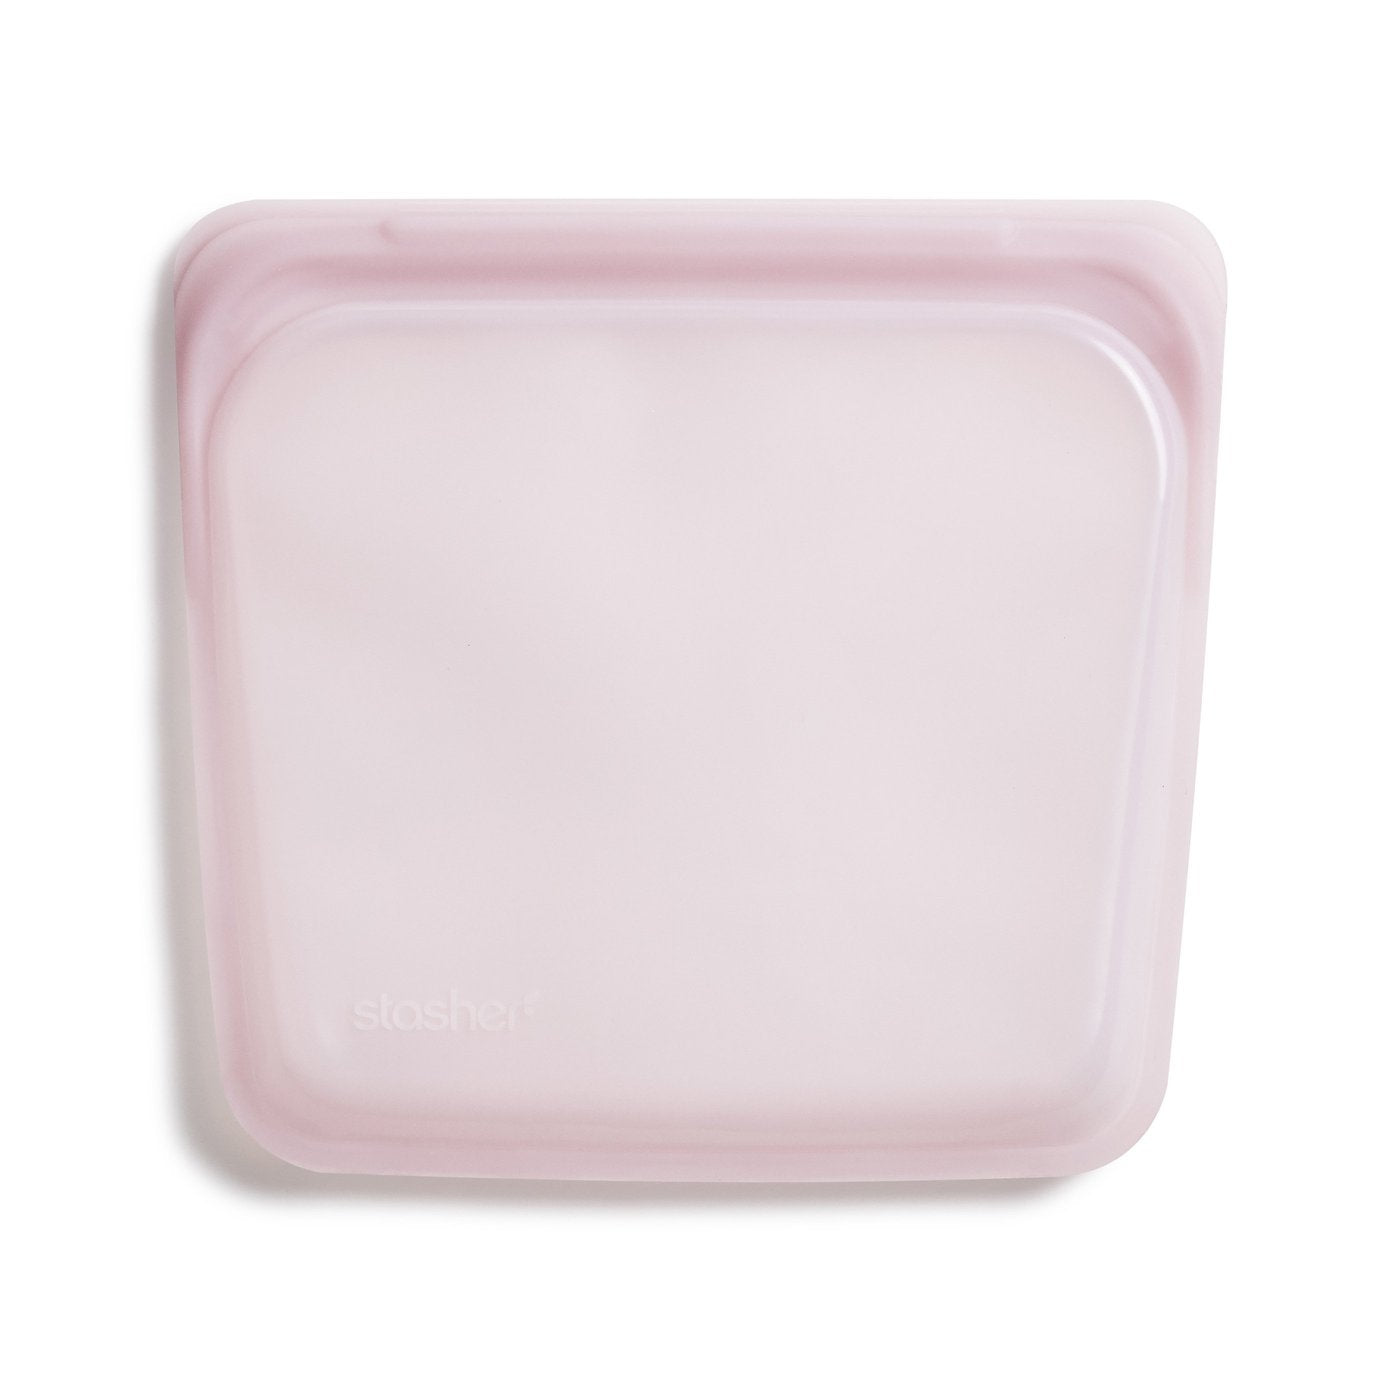 Stasher: Sandwich Bag - Rose Quartz